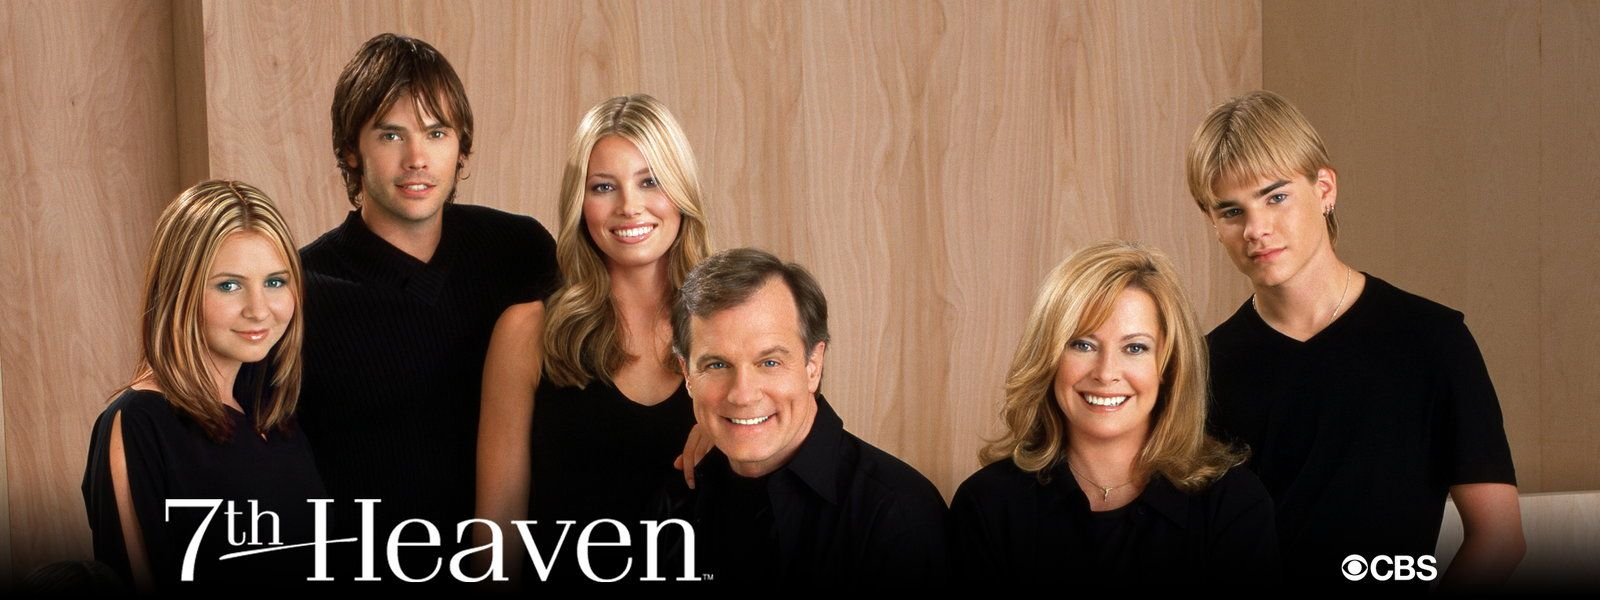 7th Heaven Online Free